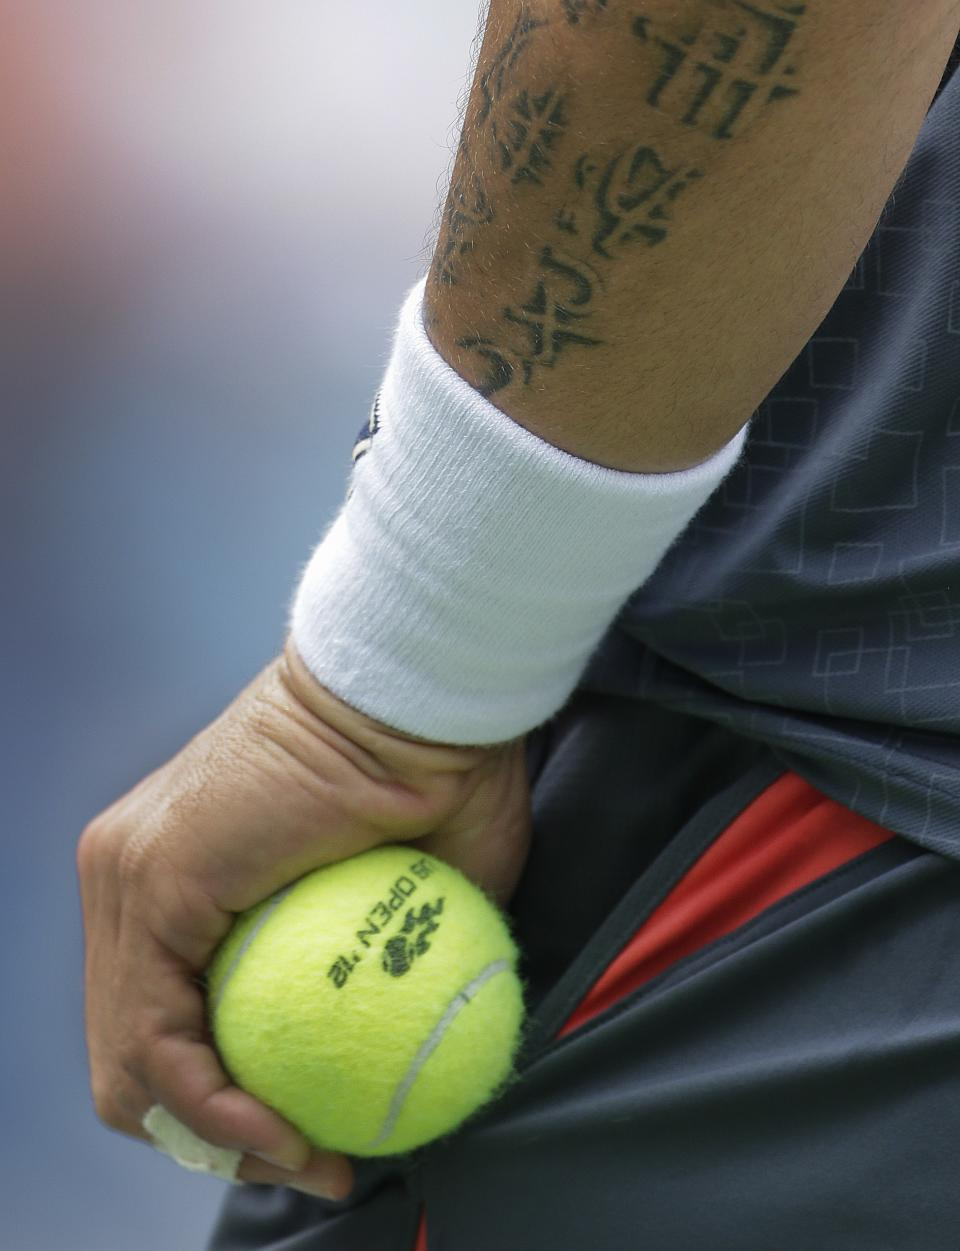 Janko Tipsarevic of Serbia grabs a ball from his pocket before serving against Spain's David Ferrer during the quarterfinals of the 2012 US Open tennis tournament, Thursday, Sept. 6, 2012, in New York. (AP Photo/Peter Morgan)